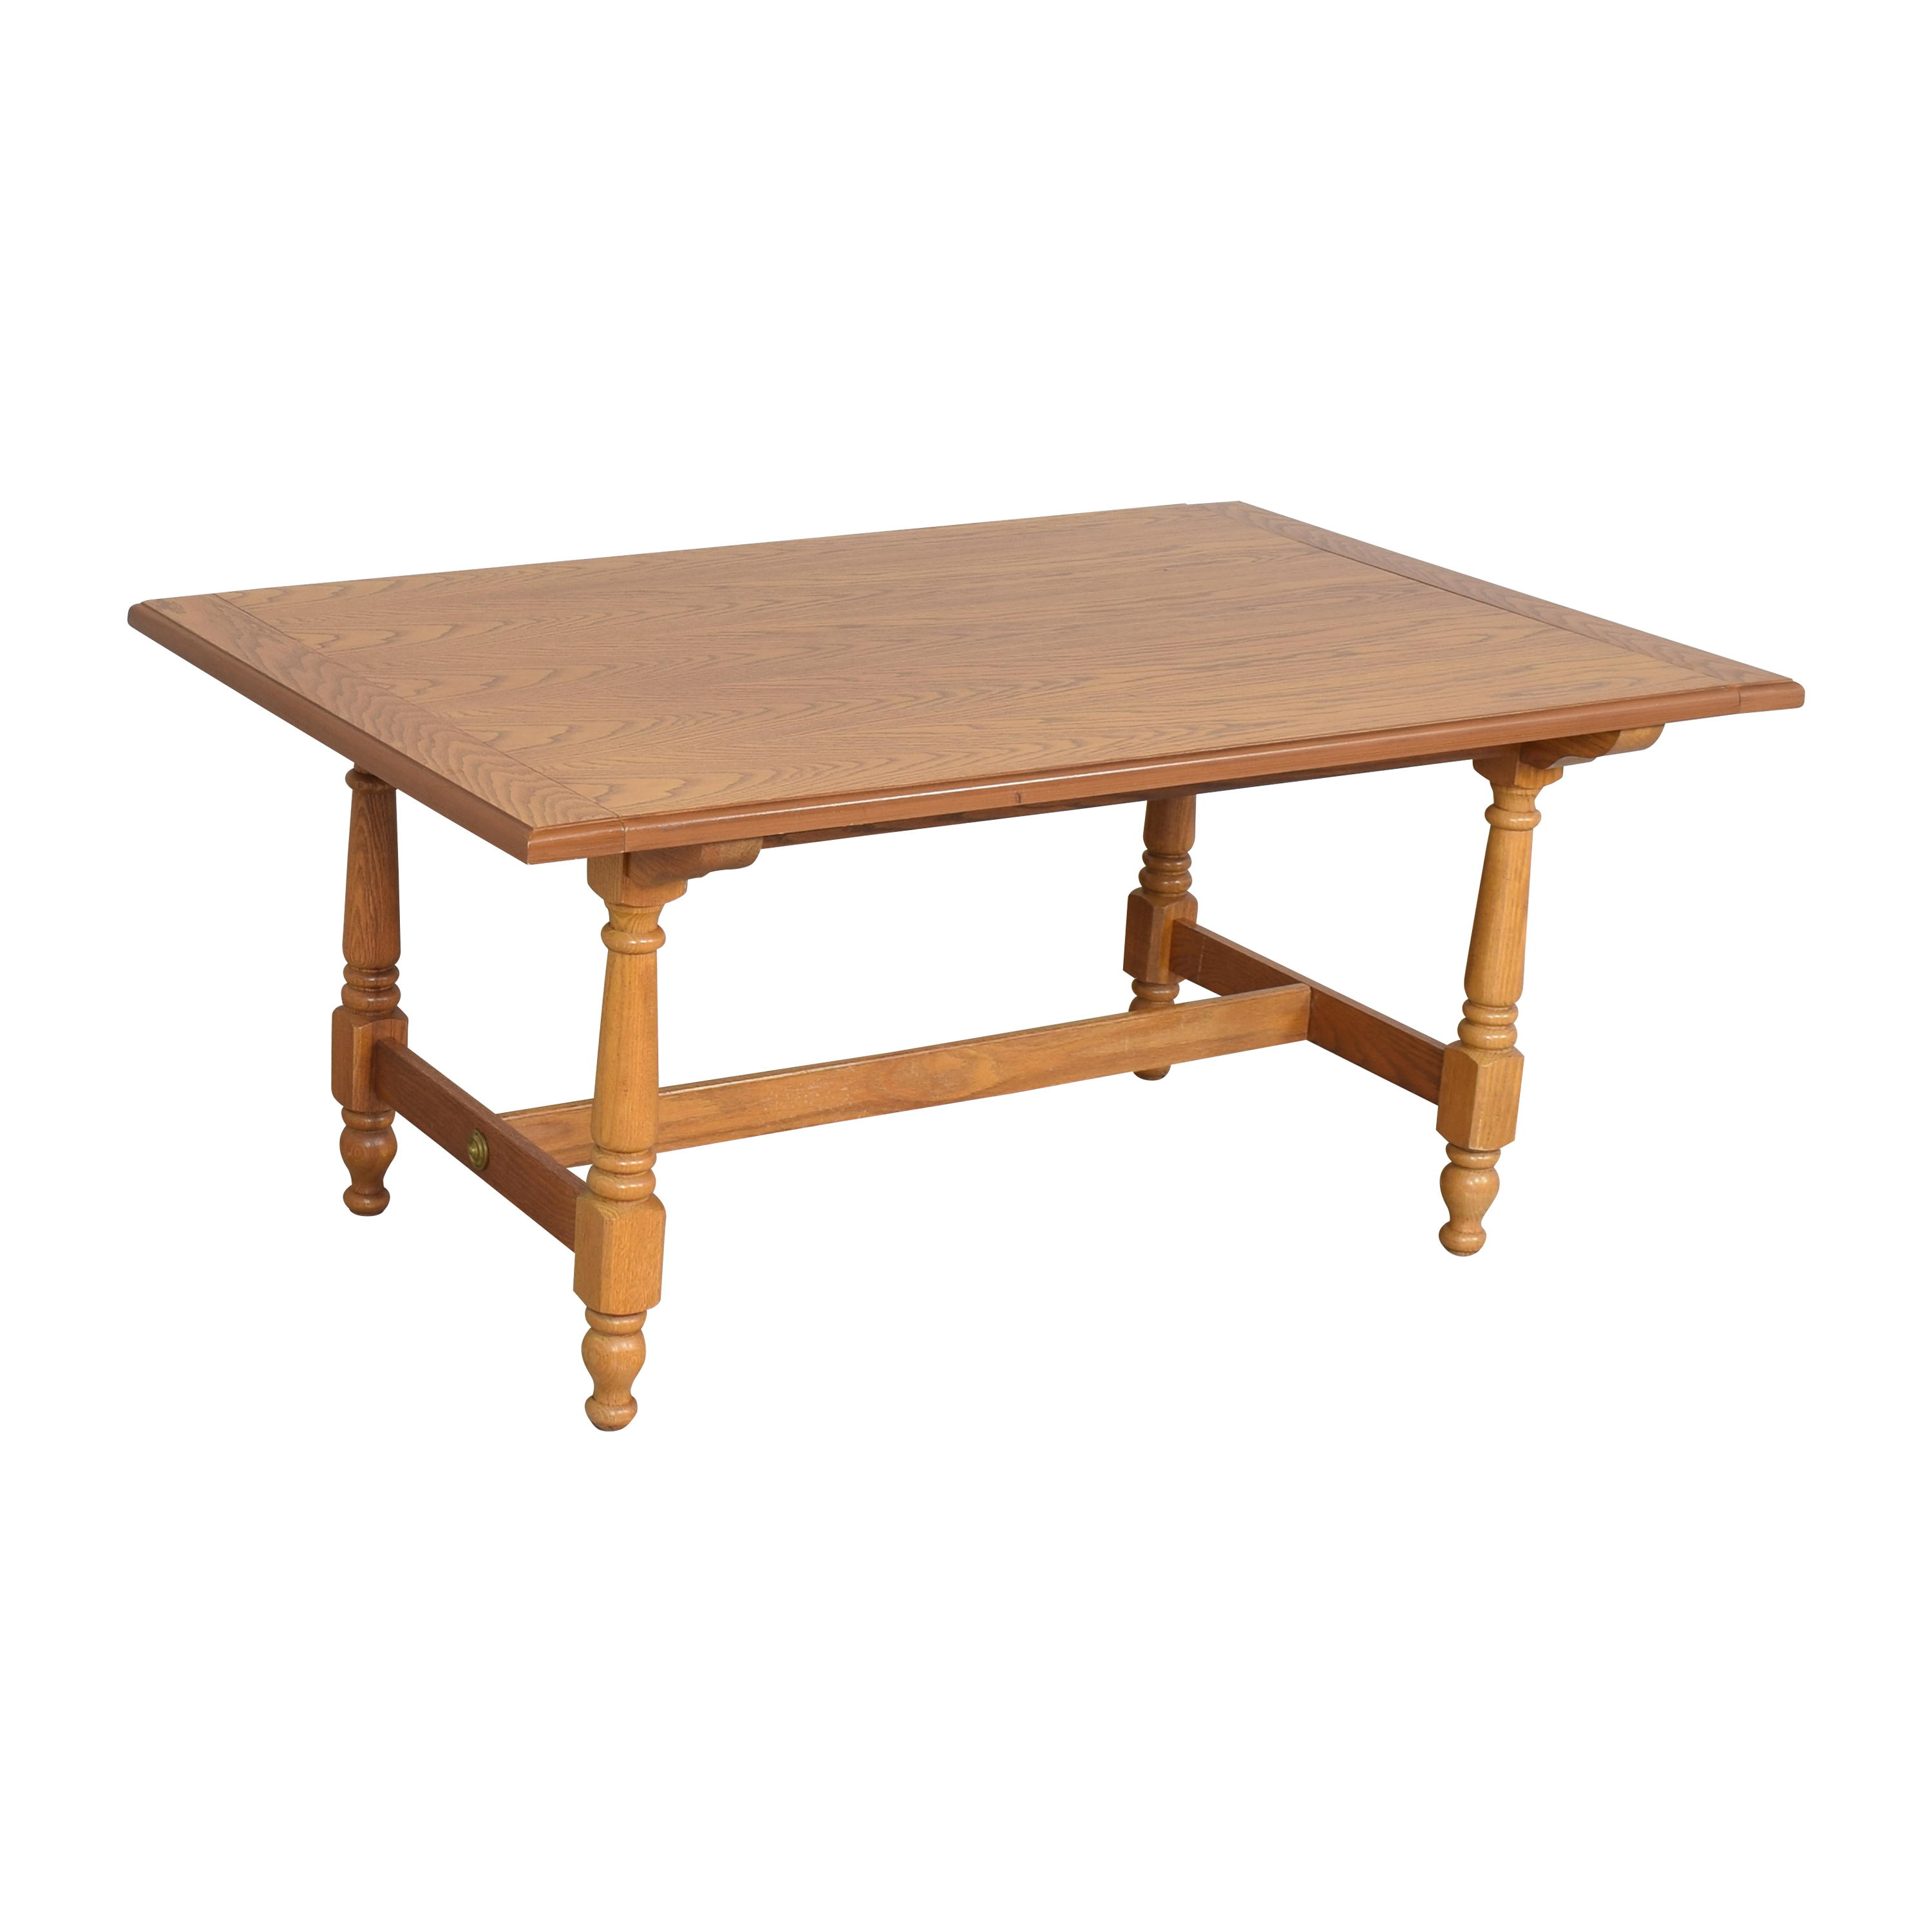 Thomasville Trestle Dining Table / Dinner Tables